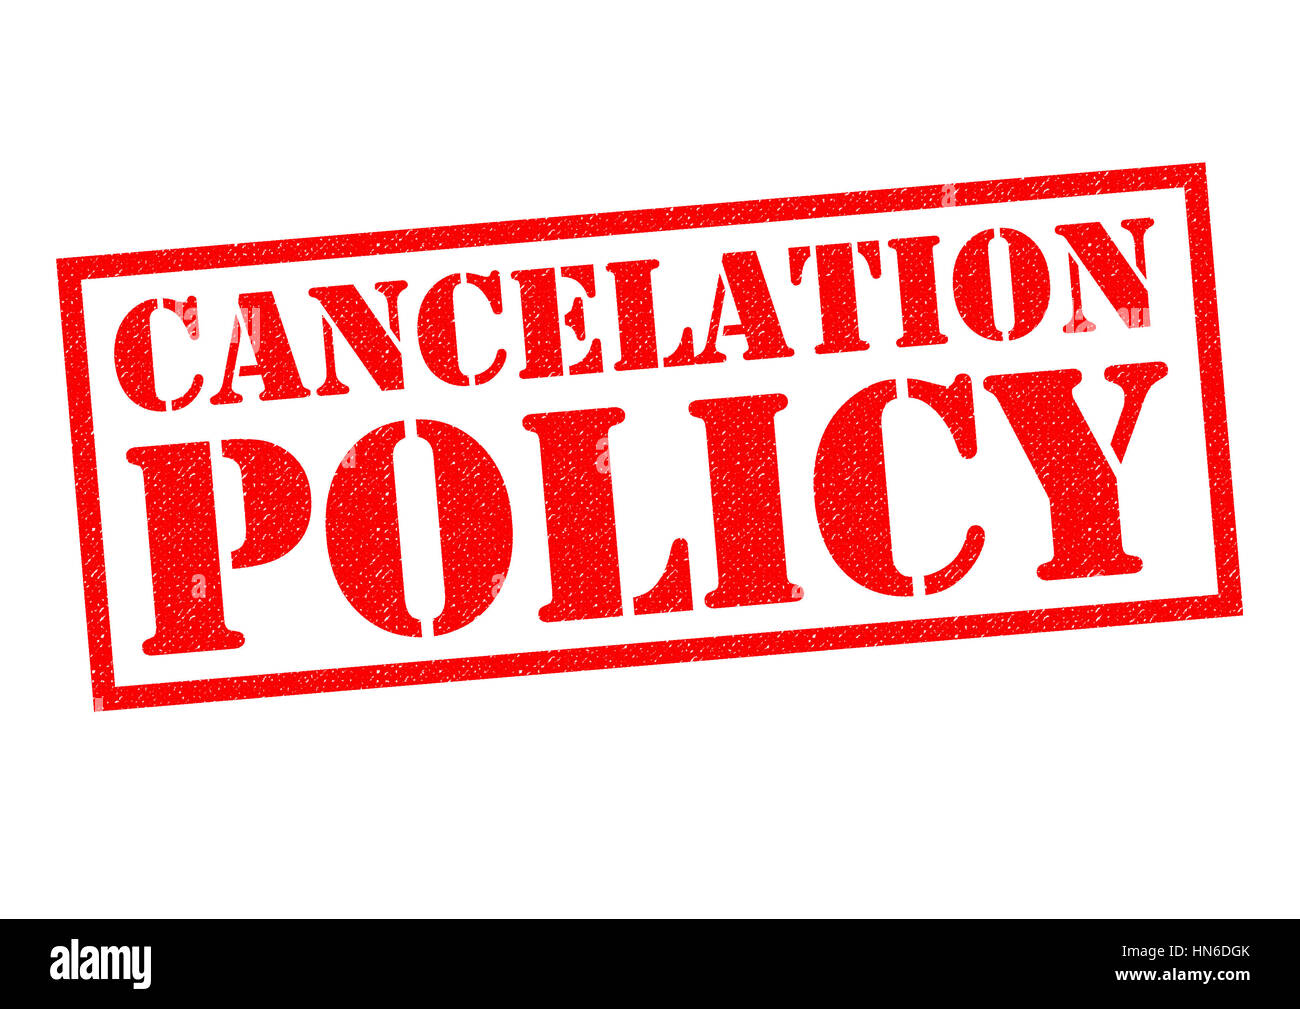 CANCELATION POLICY (US Spelling) red Rubber Stamp over a white background. - Stock Image